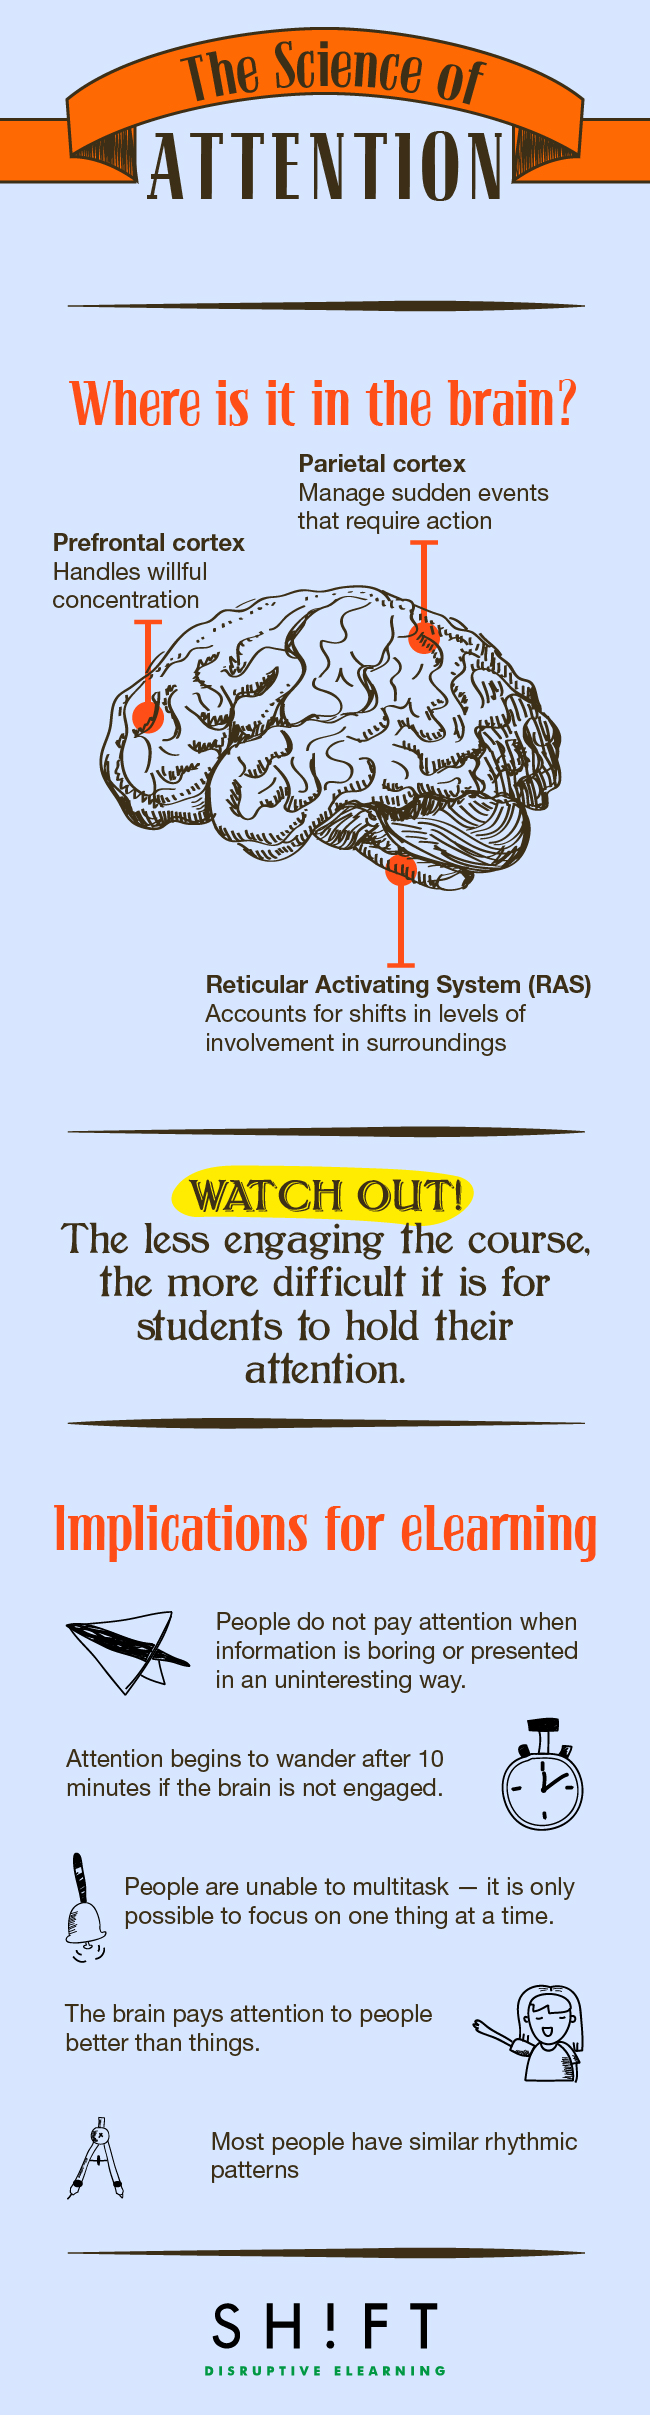 eLearning and the science of attention